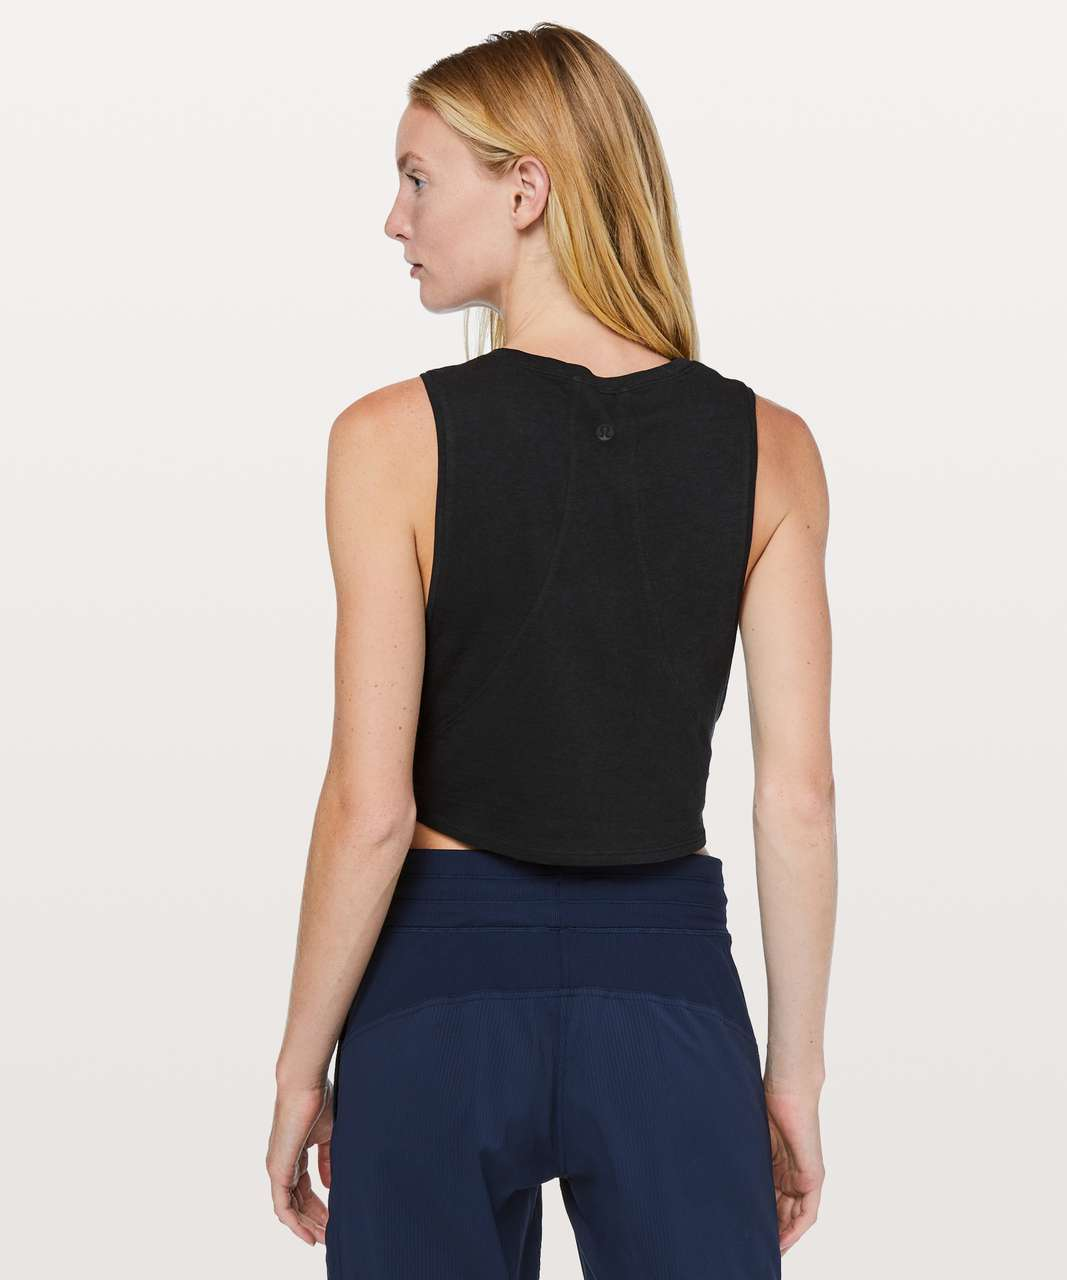 Lululemon Muscle Love Crop Tank *Light - Black